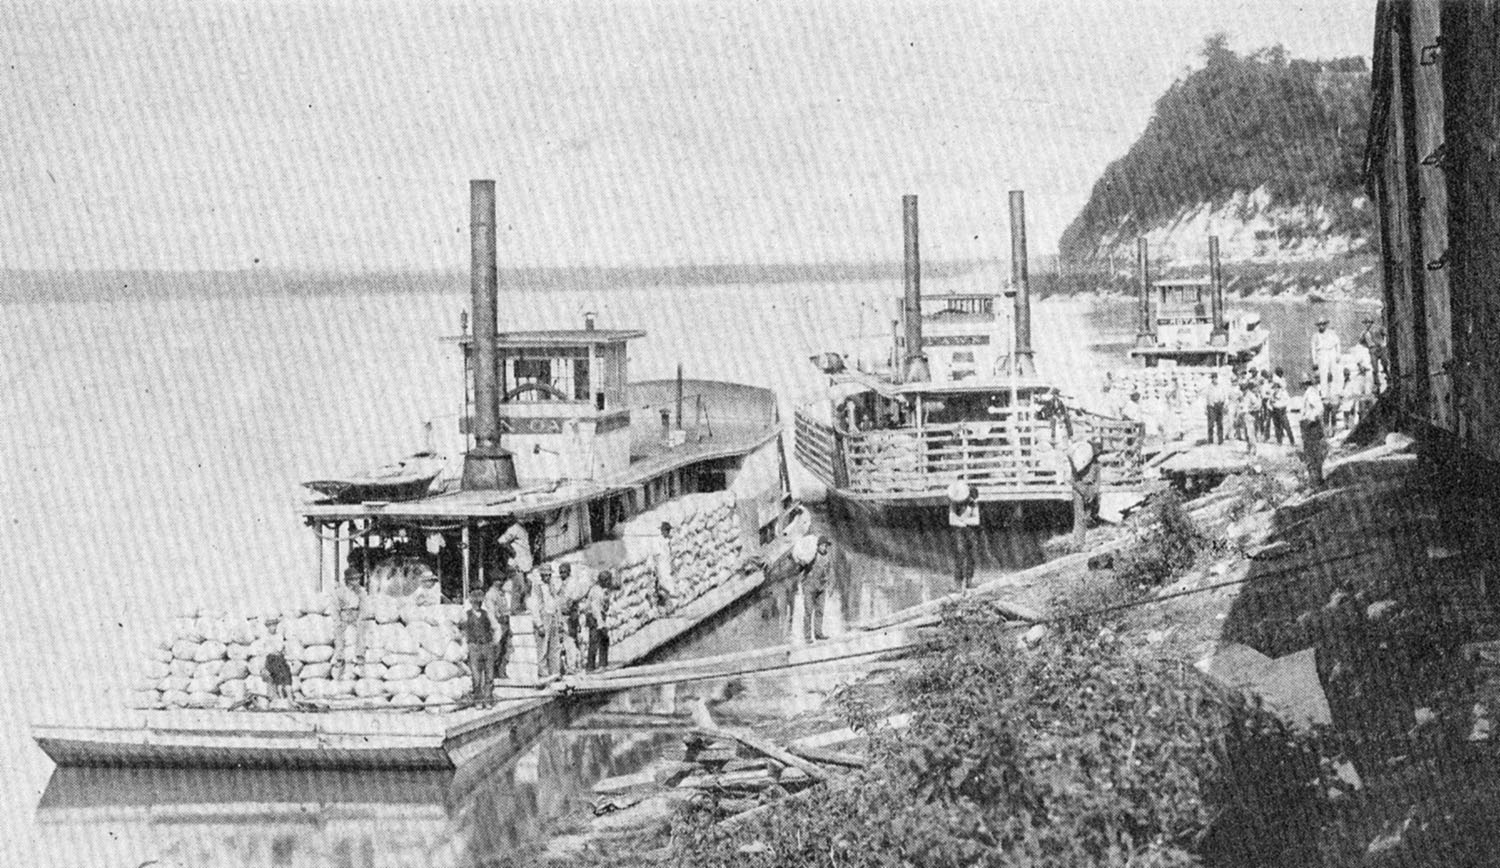 Petite paddlewheelers moored at Hermann, Mo., in 1890. (Keith Norrington collection)